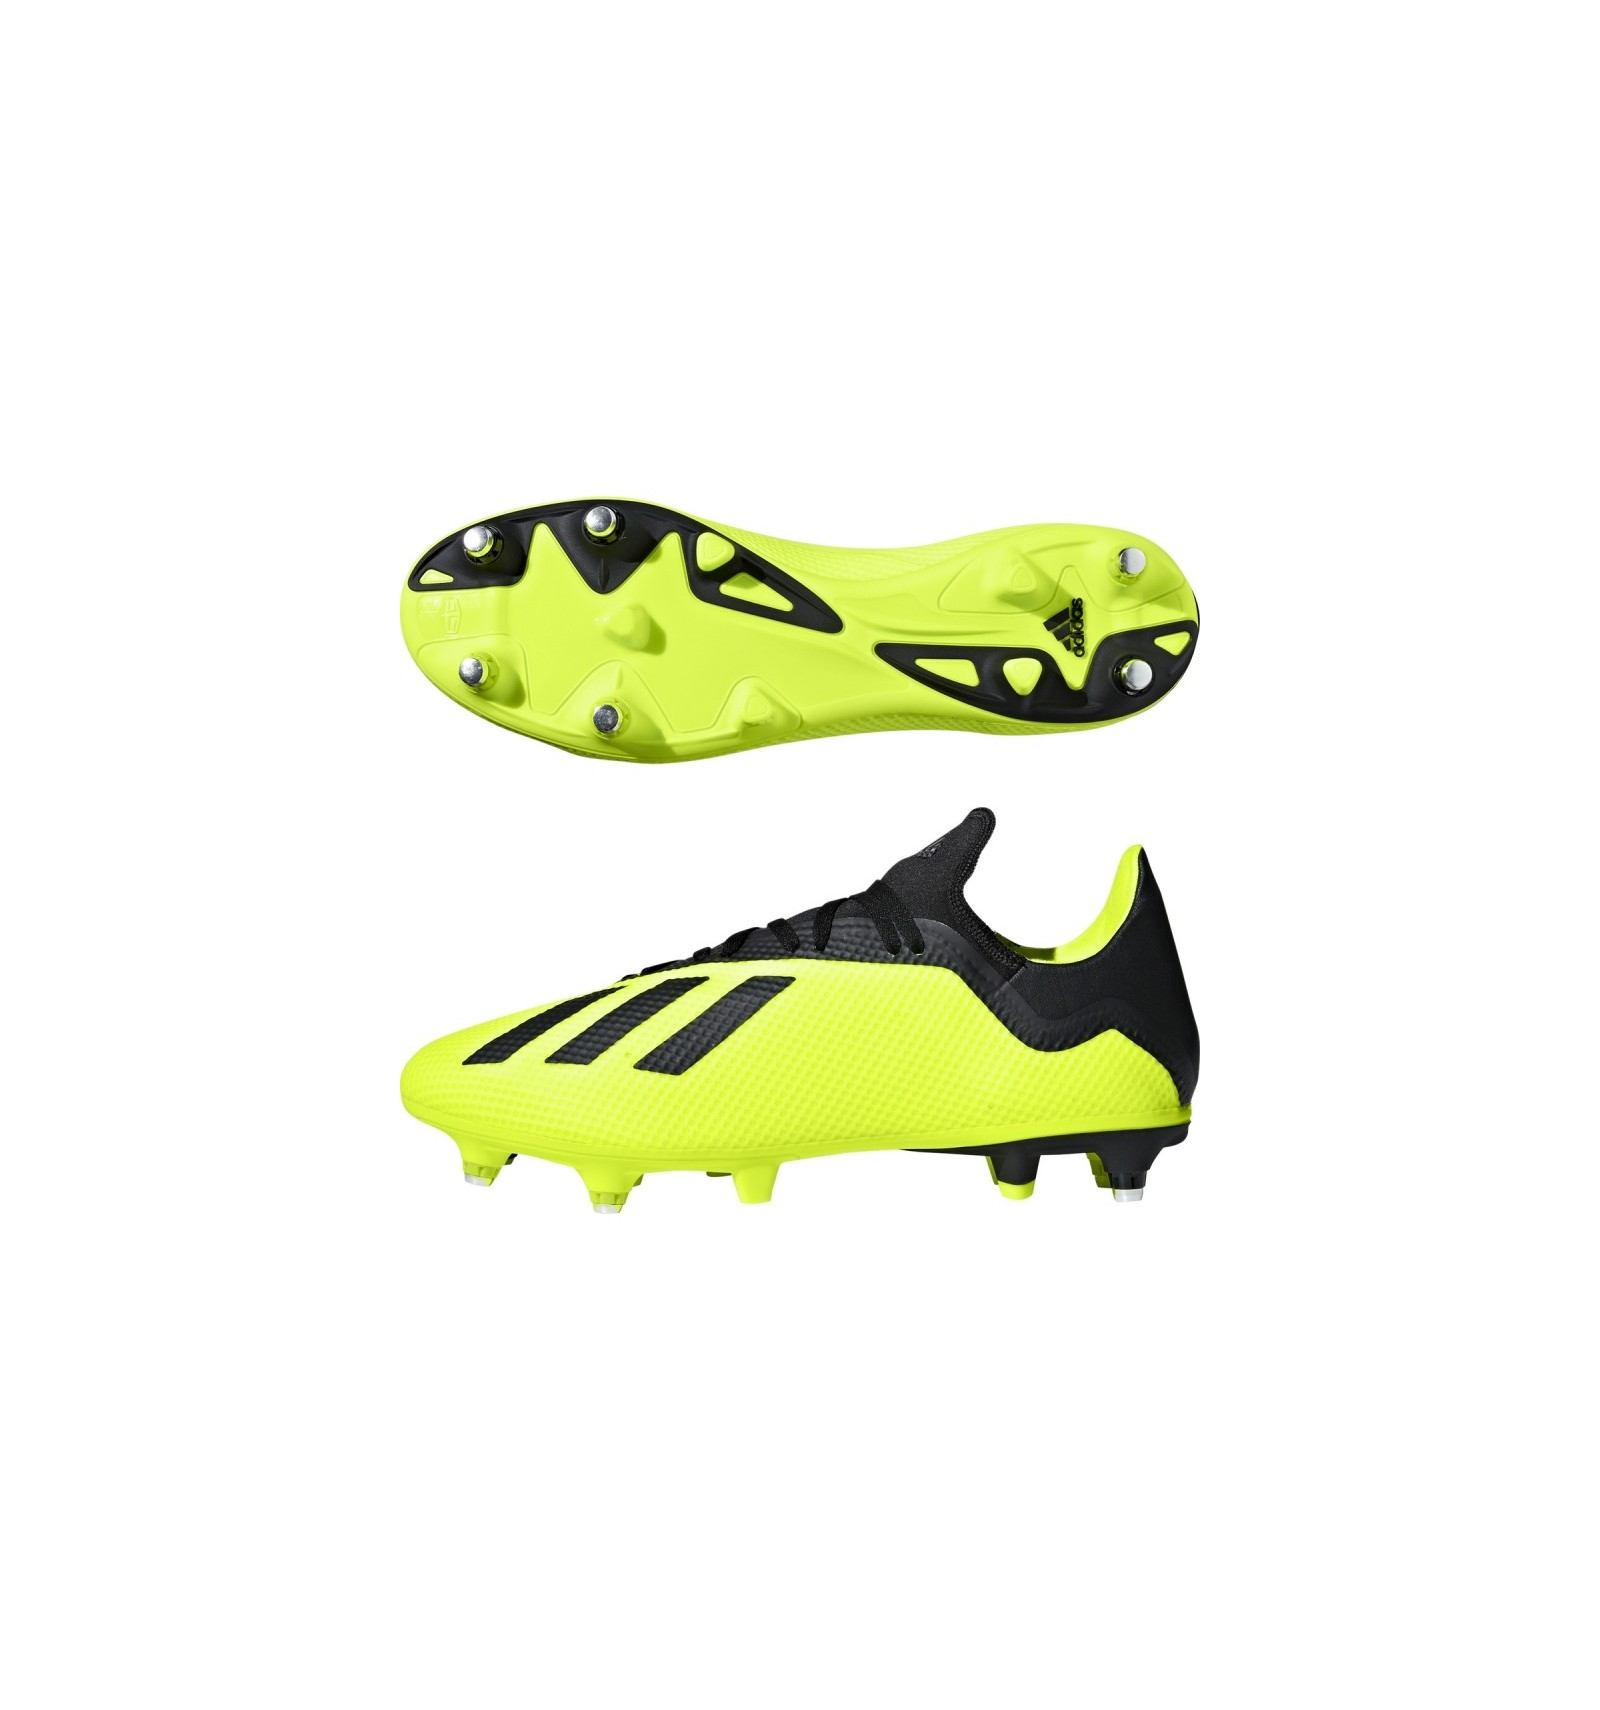 size 40 00925 d0b94 Noir Chaussures Jaune Blanc 3 Rugby 18 Adidas Sg X Achat XY6